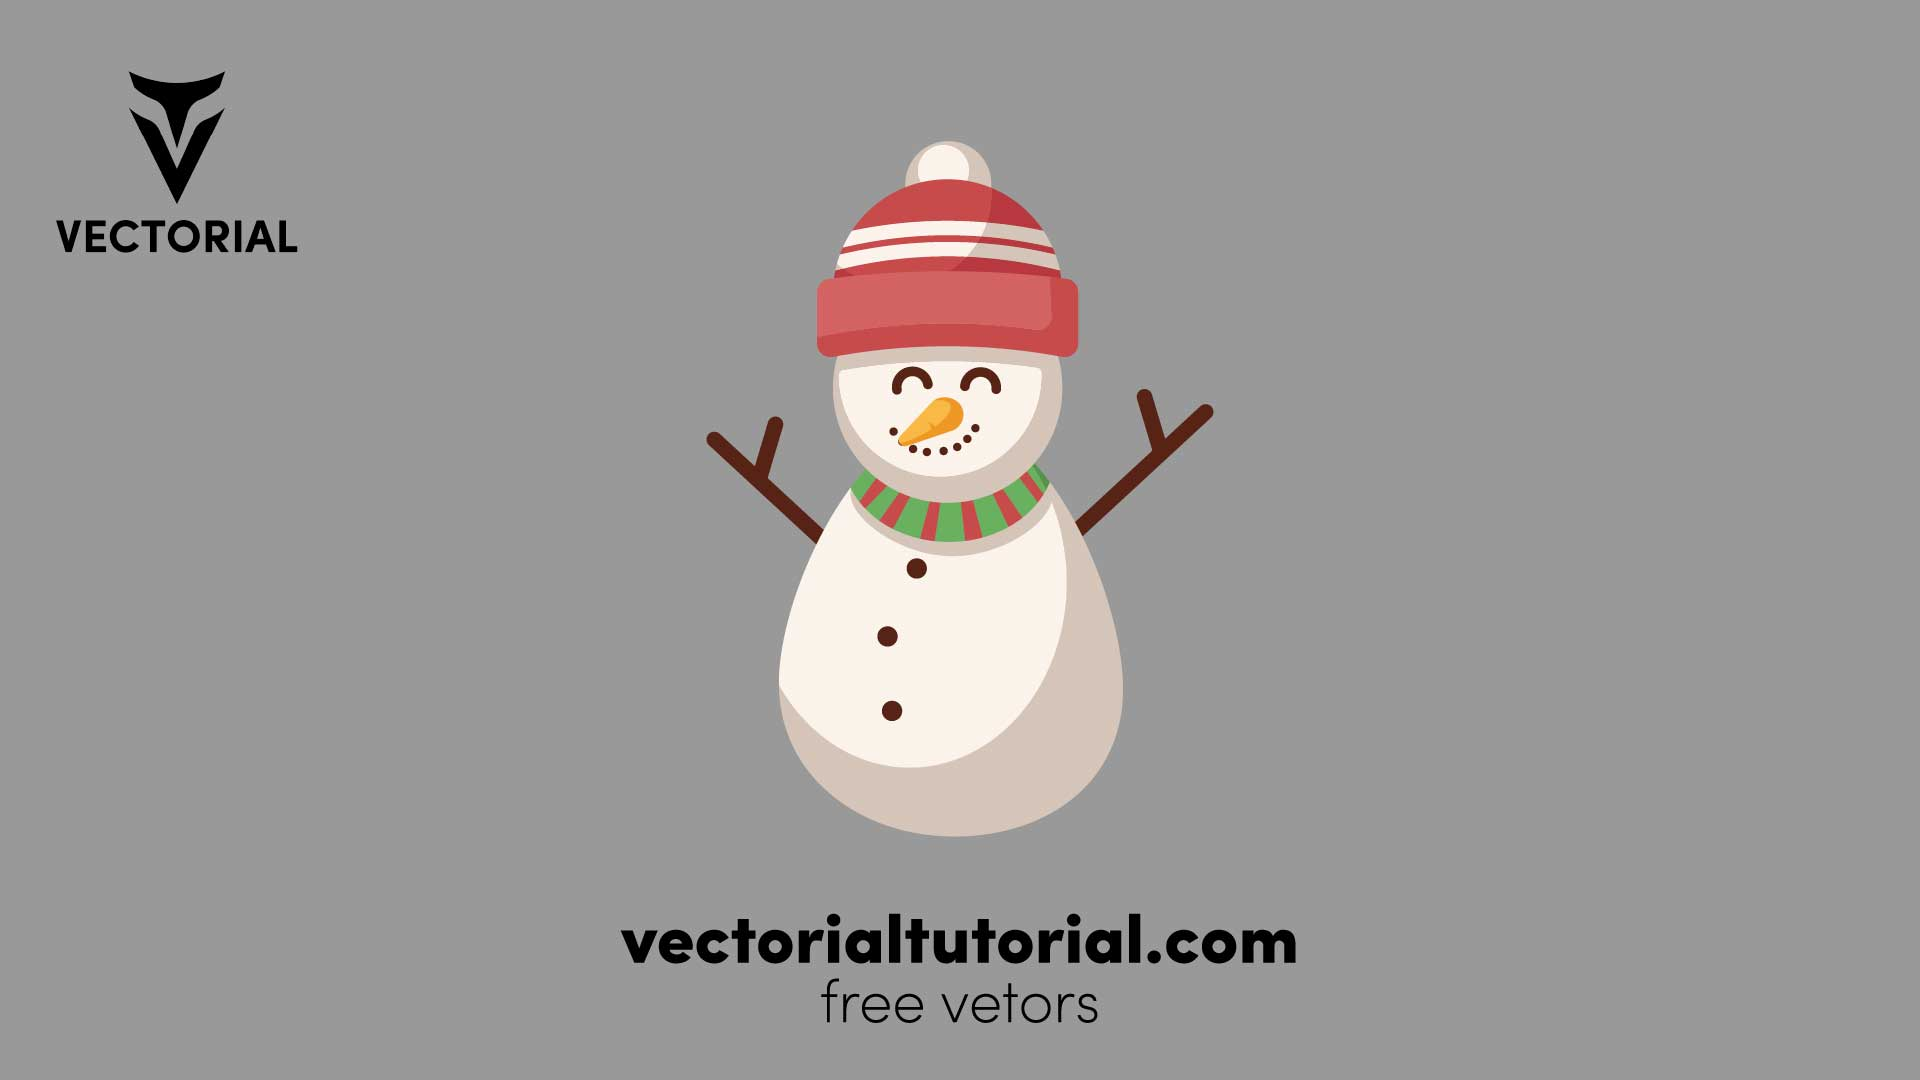 Snowman flat icon – Free vector illustration